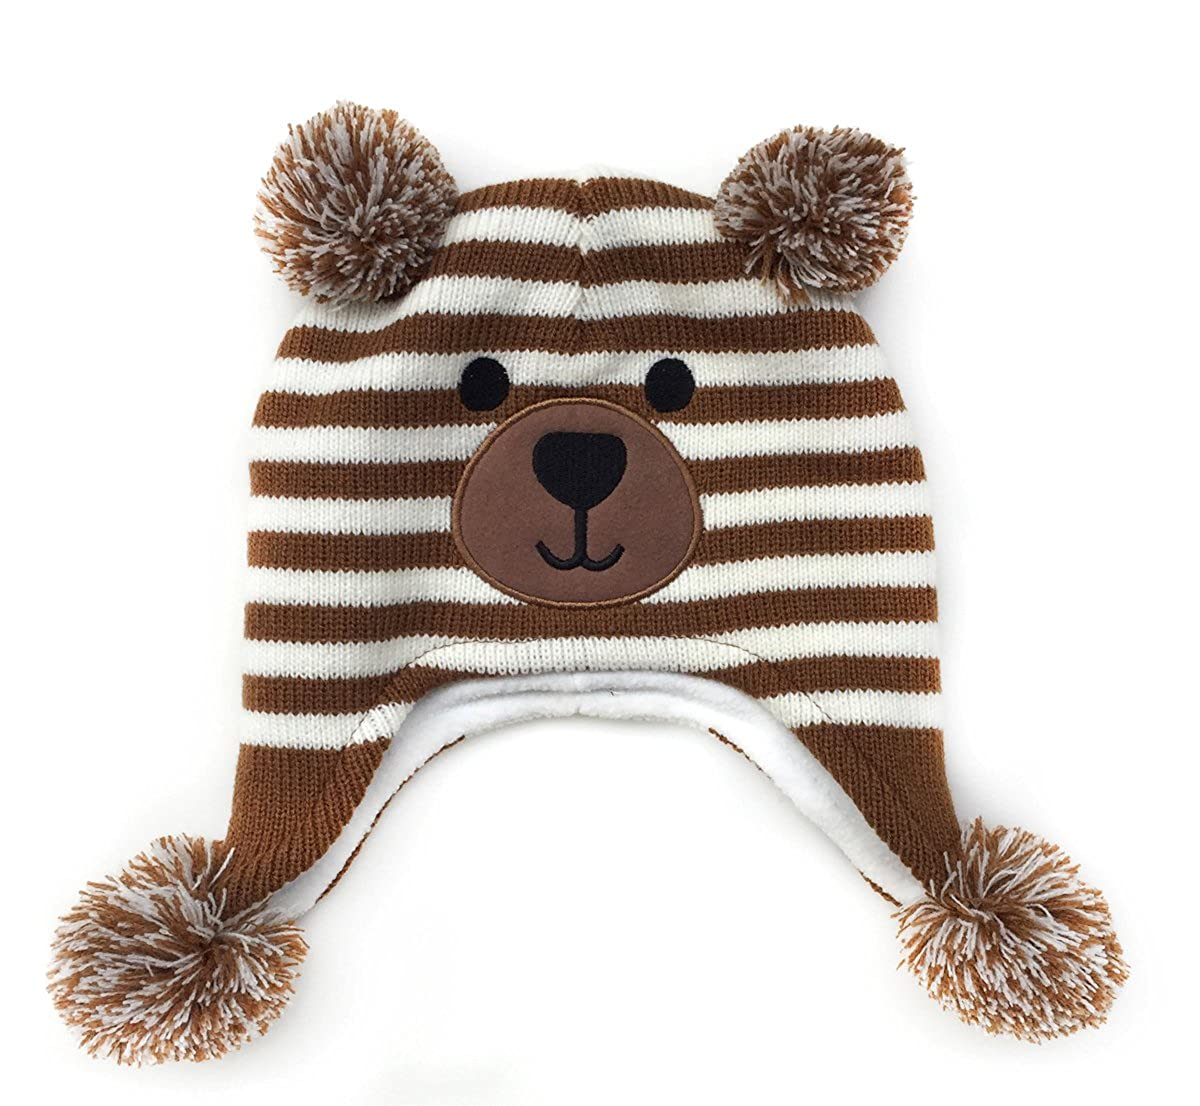 LoveKids Girls and Boys Sherpa Lined Fleece Hat Earflap